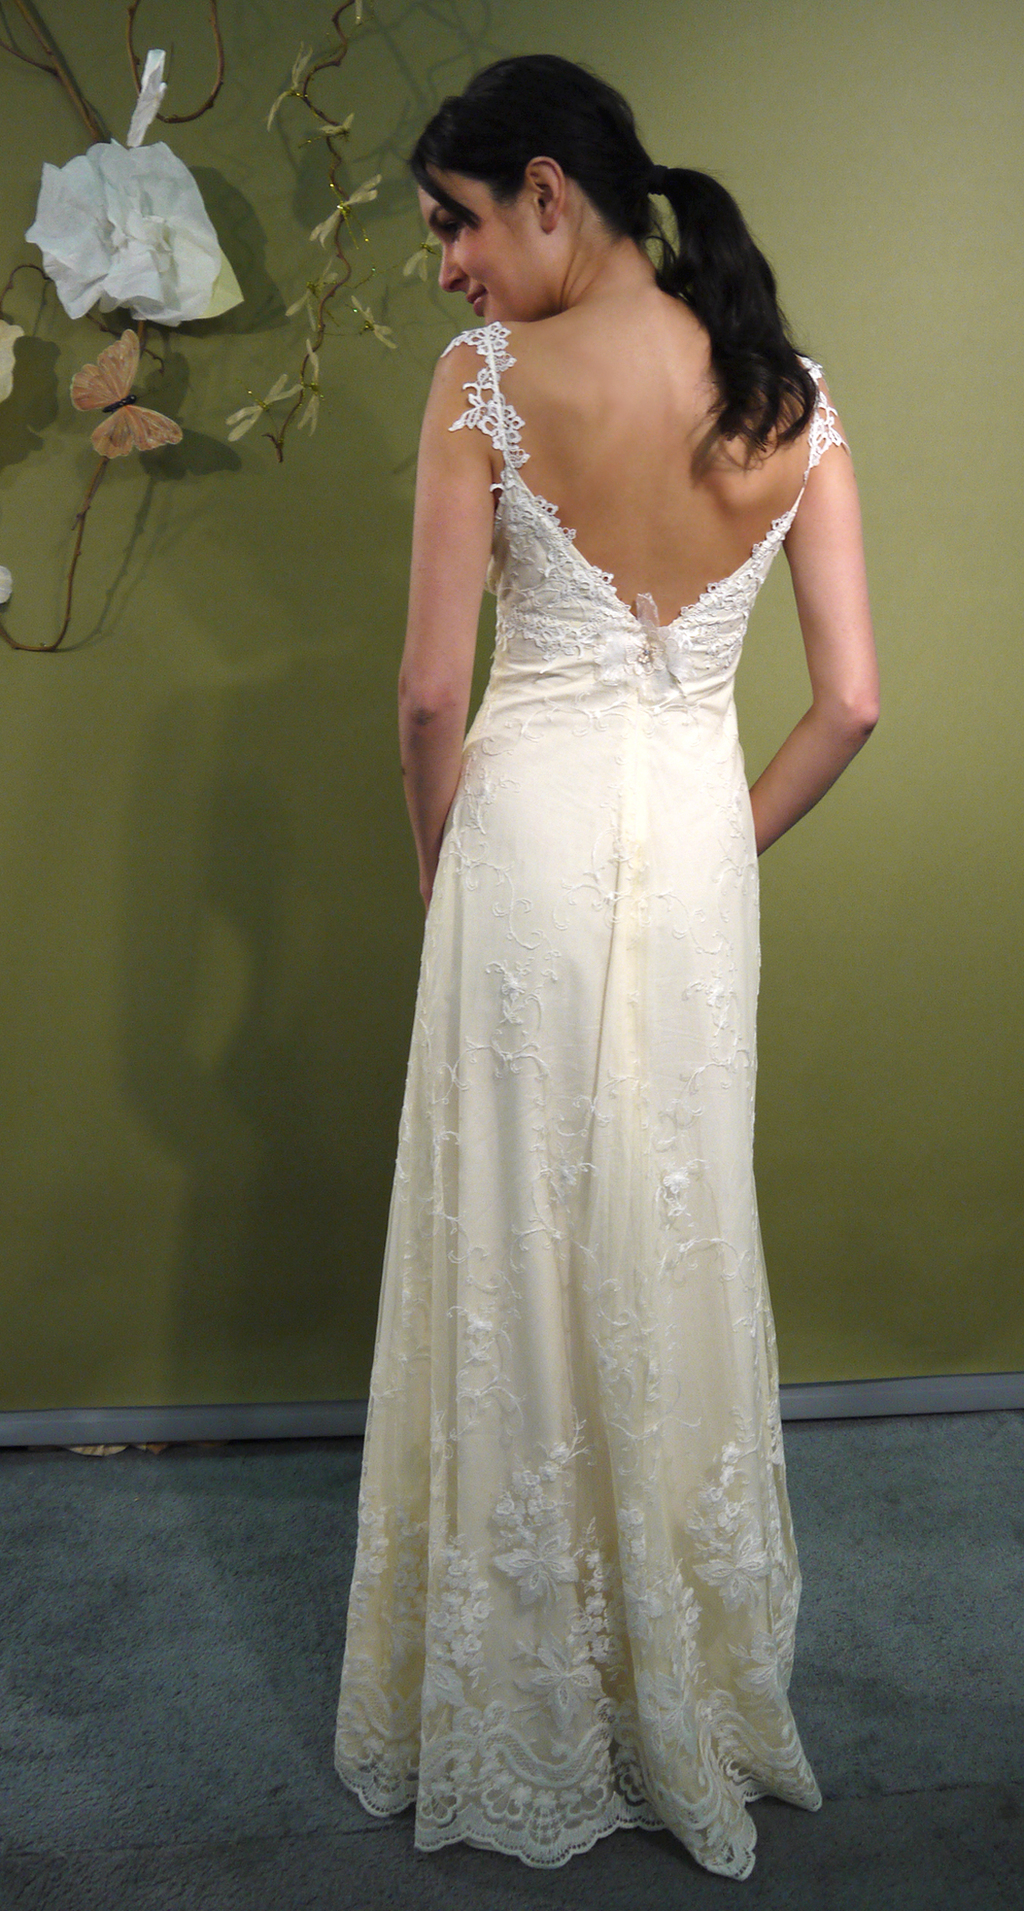 Fall-2011-wedding-dress-constance-ivory-bridal-gown-claire-pettibone-back.full